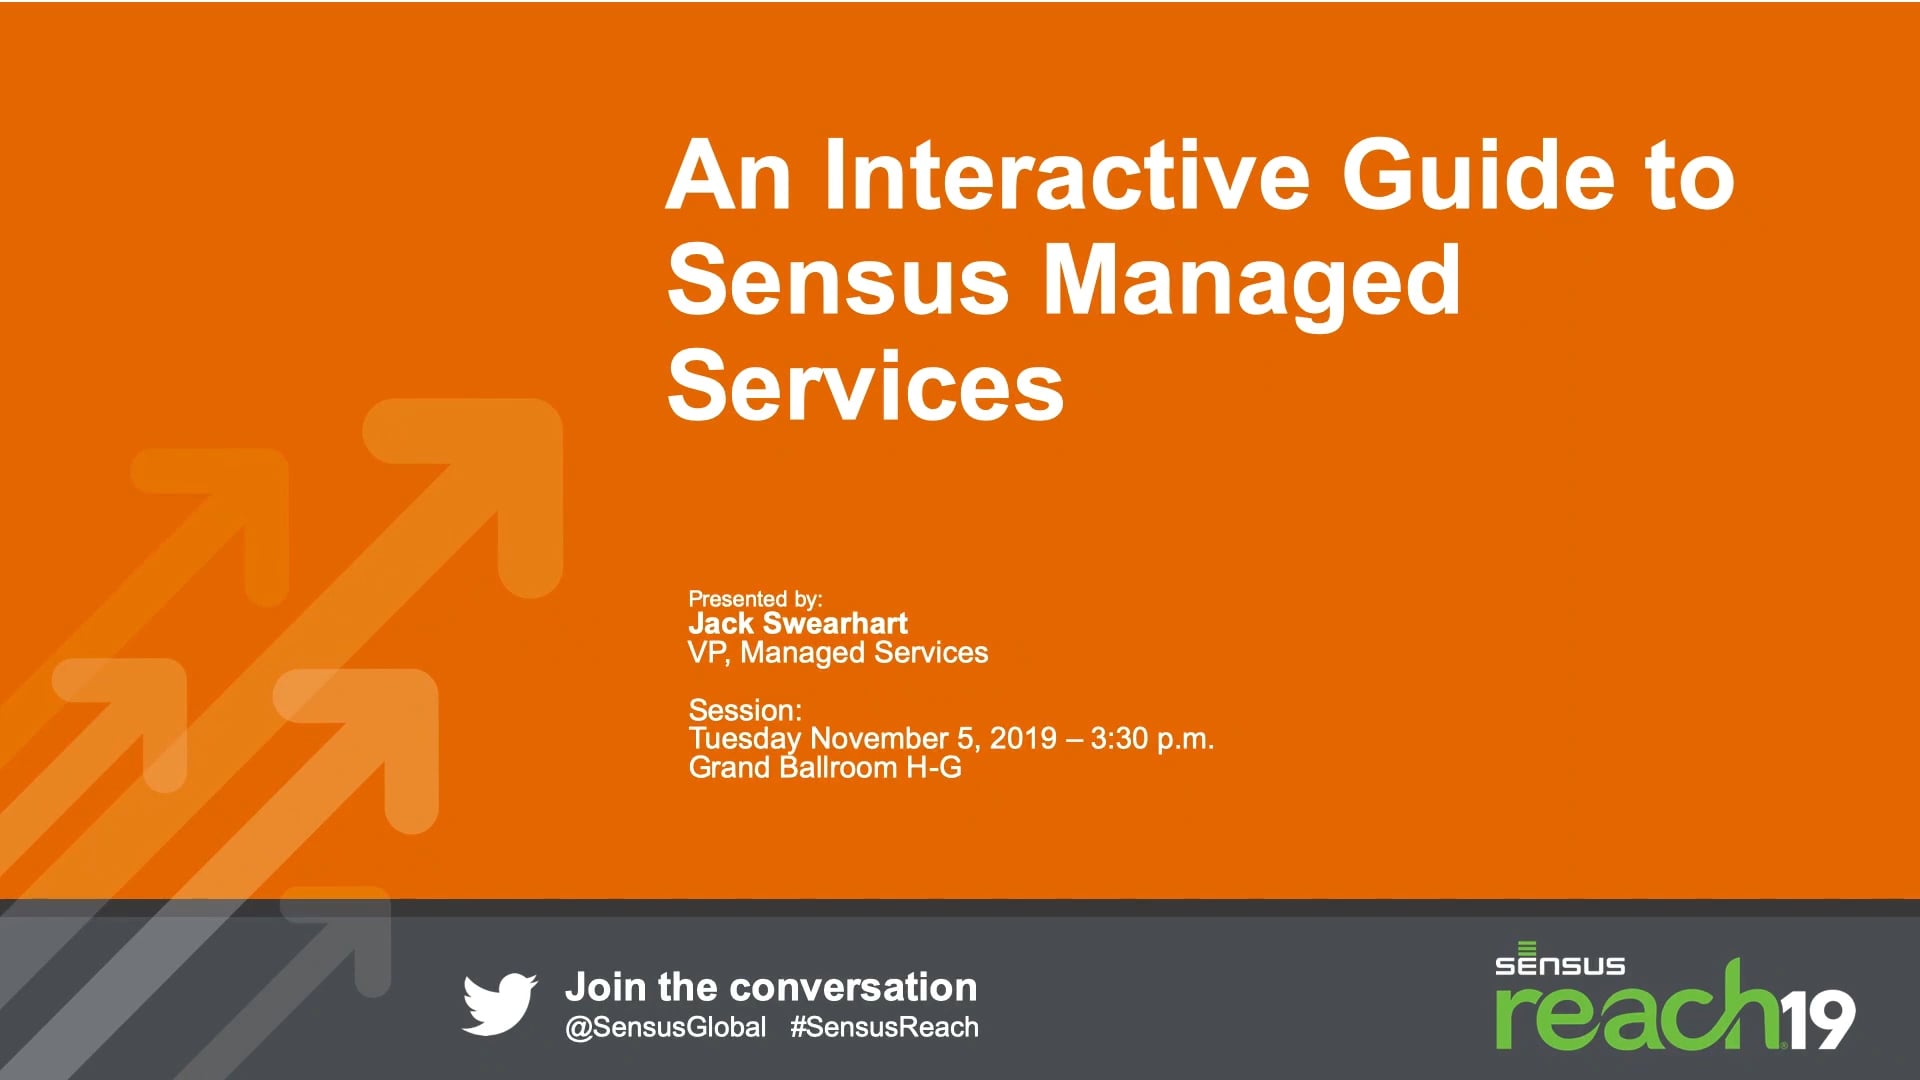 An Interactive Guide to Sensus Managed Services